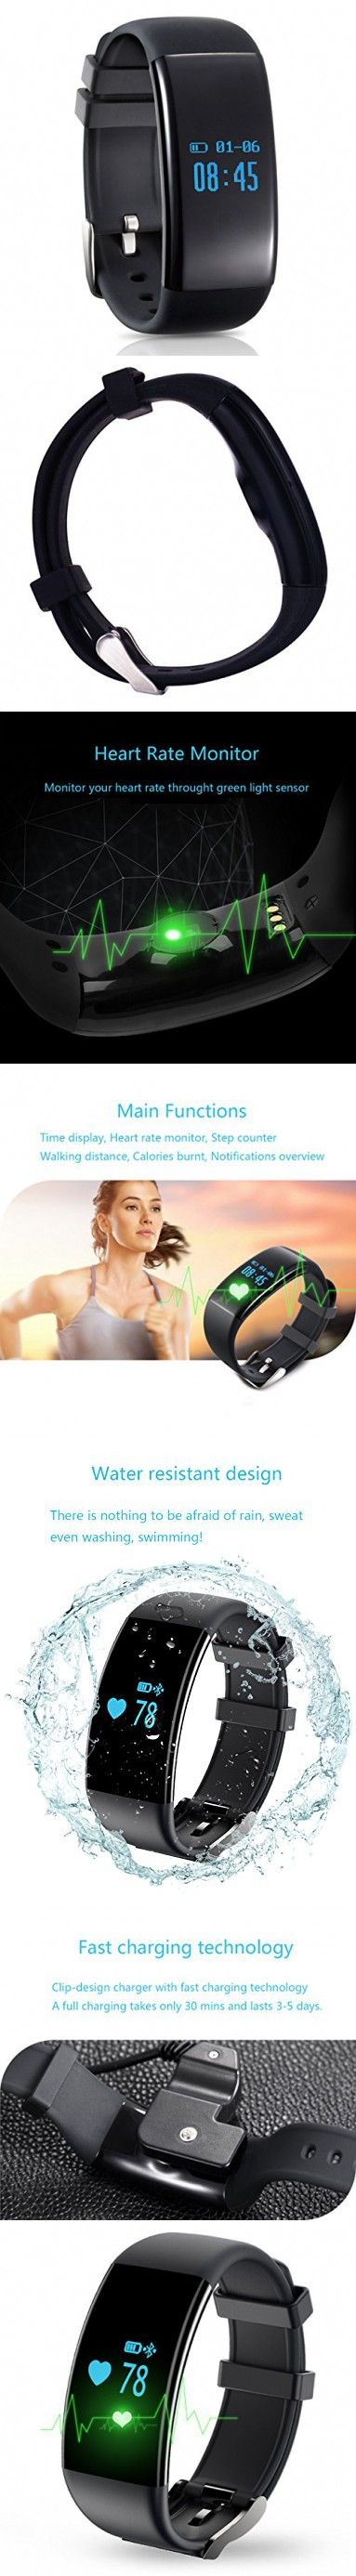 fitness tracker app iphone 5s